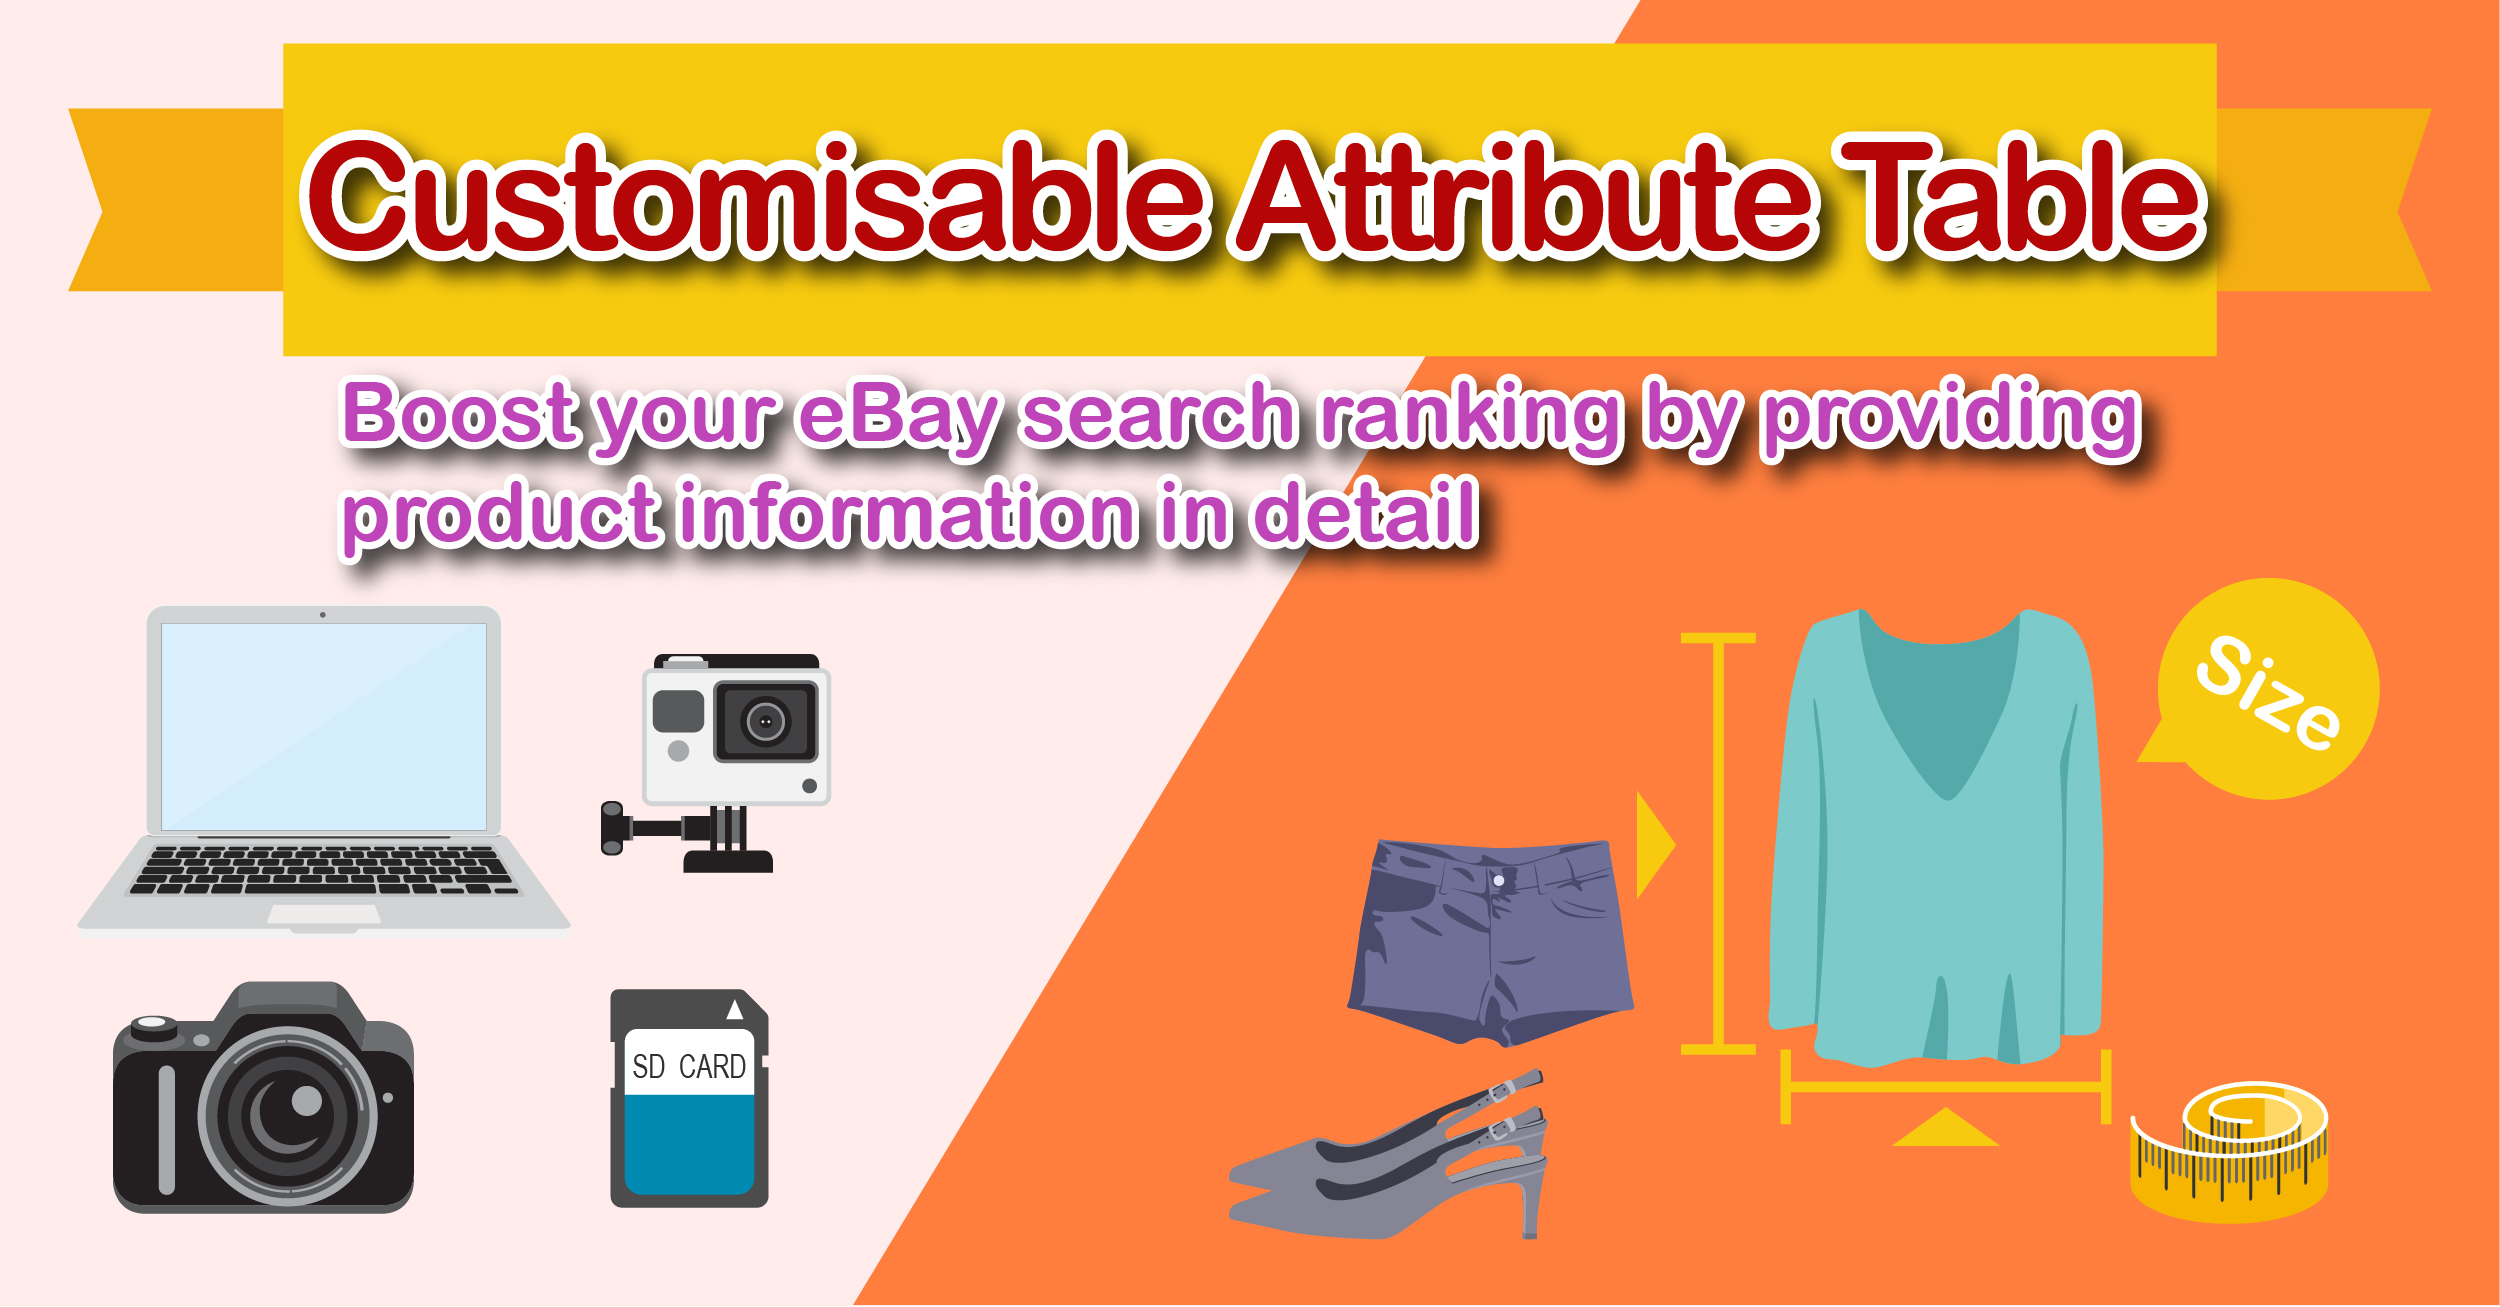 Ebay Promotion Tips Customisable Attribute Table Boost Your Ebay Search Ranking By Providing Product Information In Detail Soldeazy